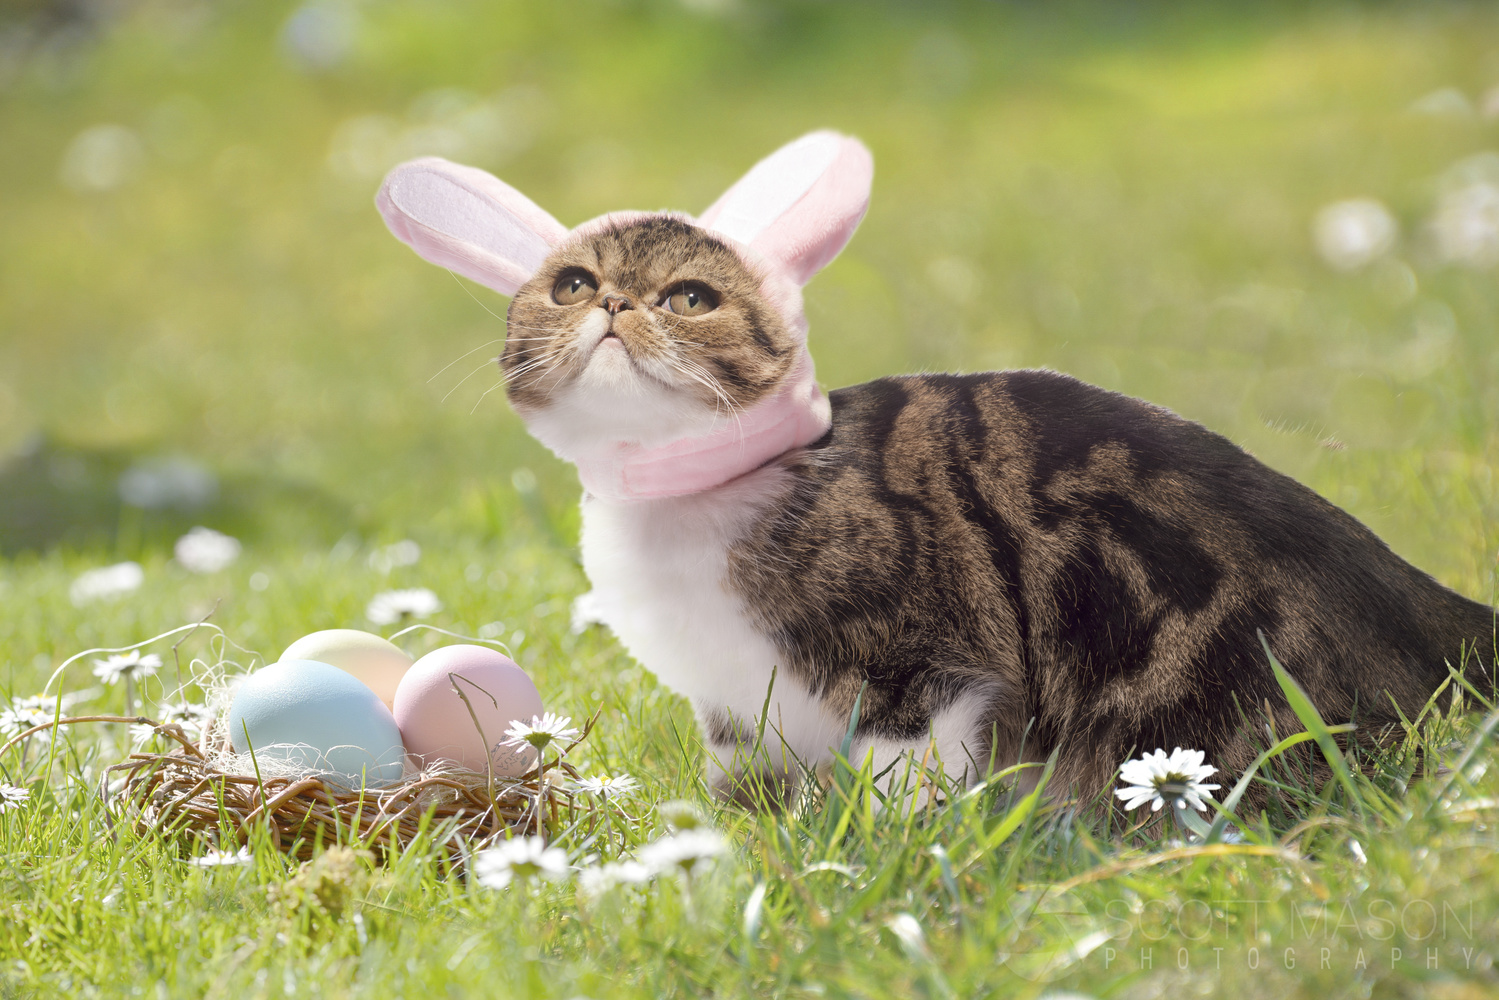 a cat wearing bunny ears in a field with easter eggs